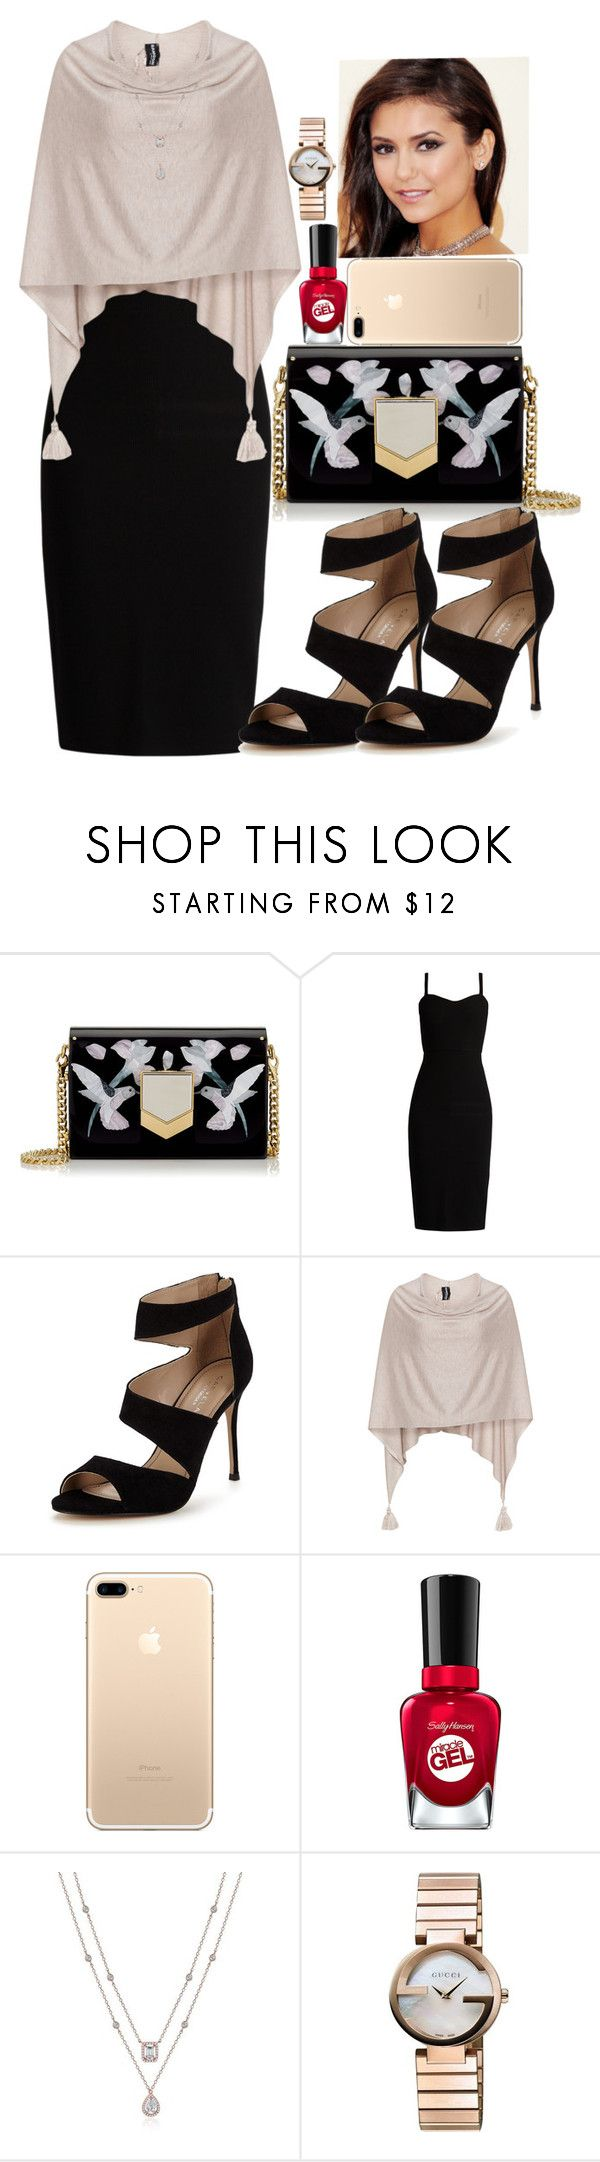 """Nina Dobrev Look"" by ludya ❤ liked on Polyvore featuring Jimmy Choo, MaxMara, Carvela, Samoon and Gucci"